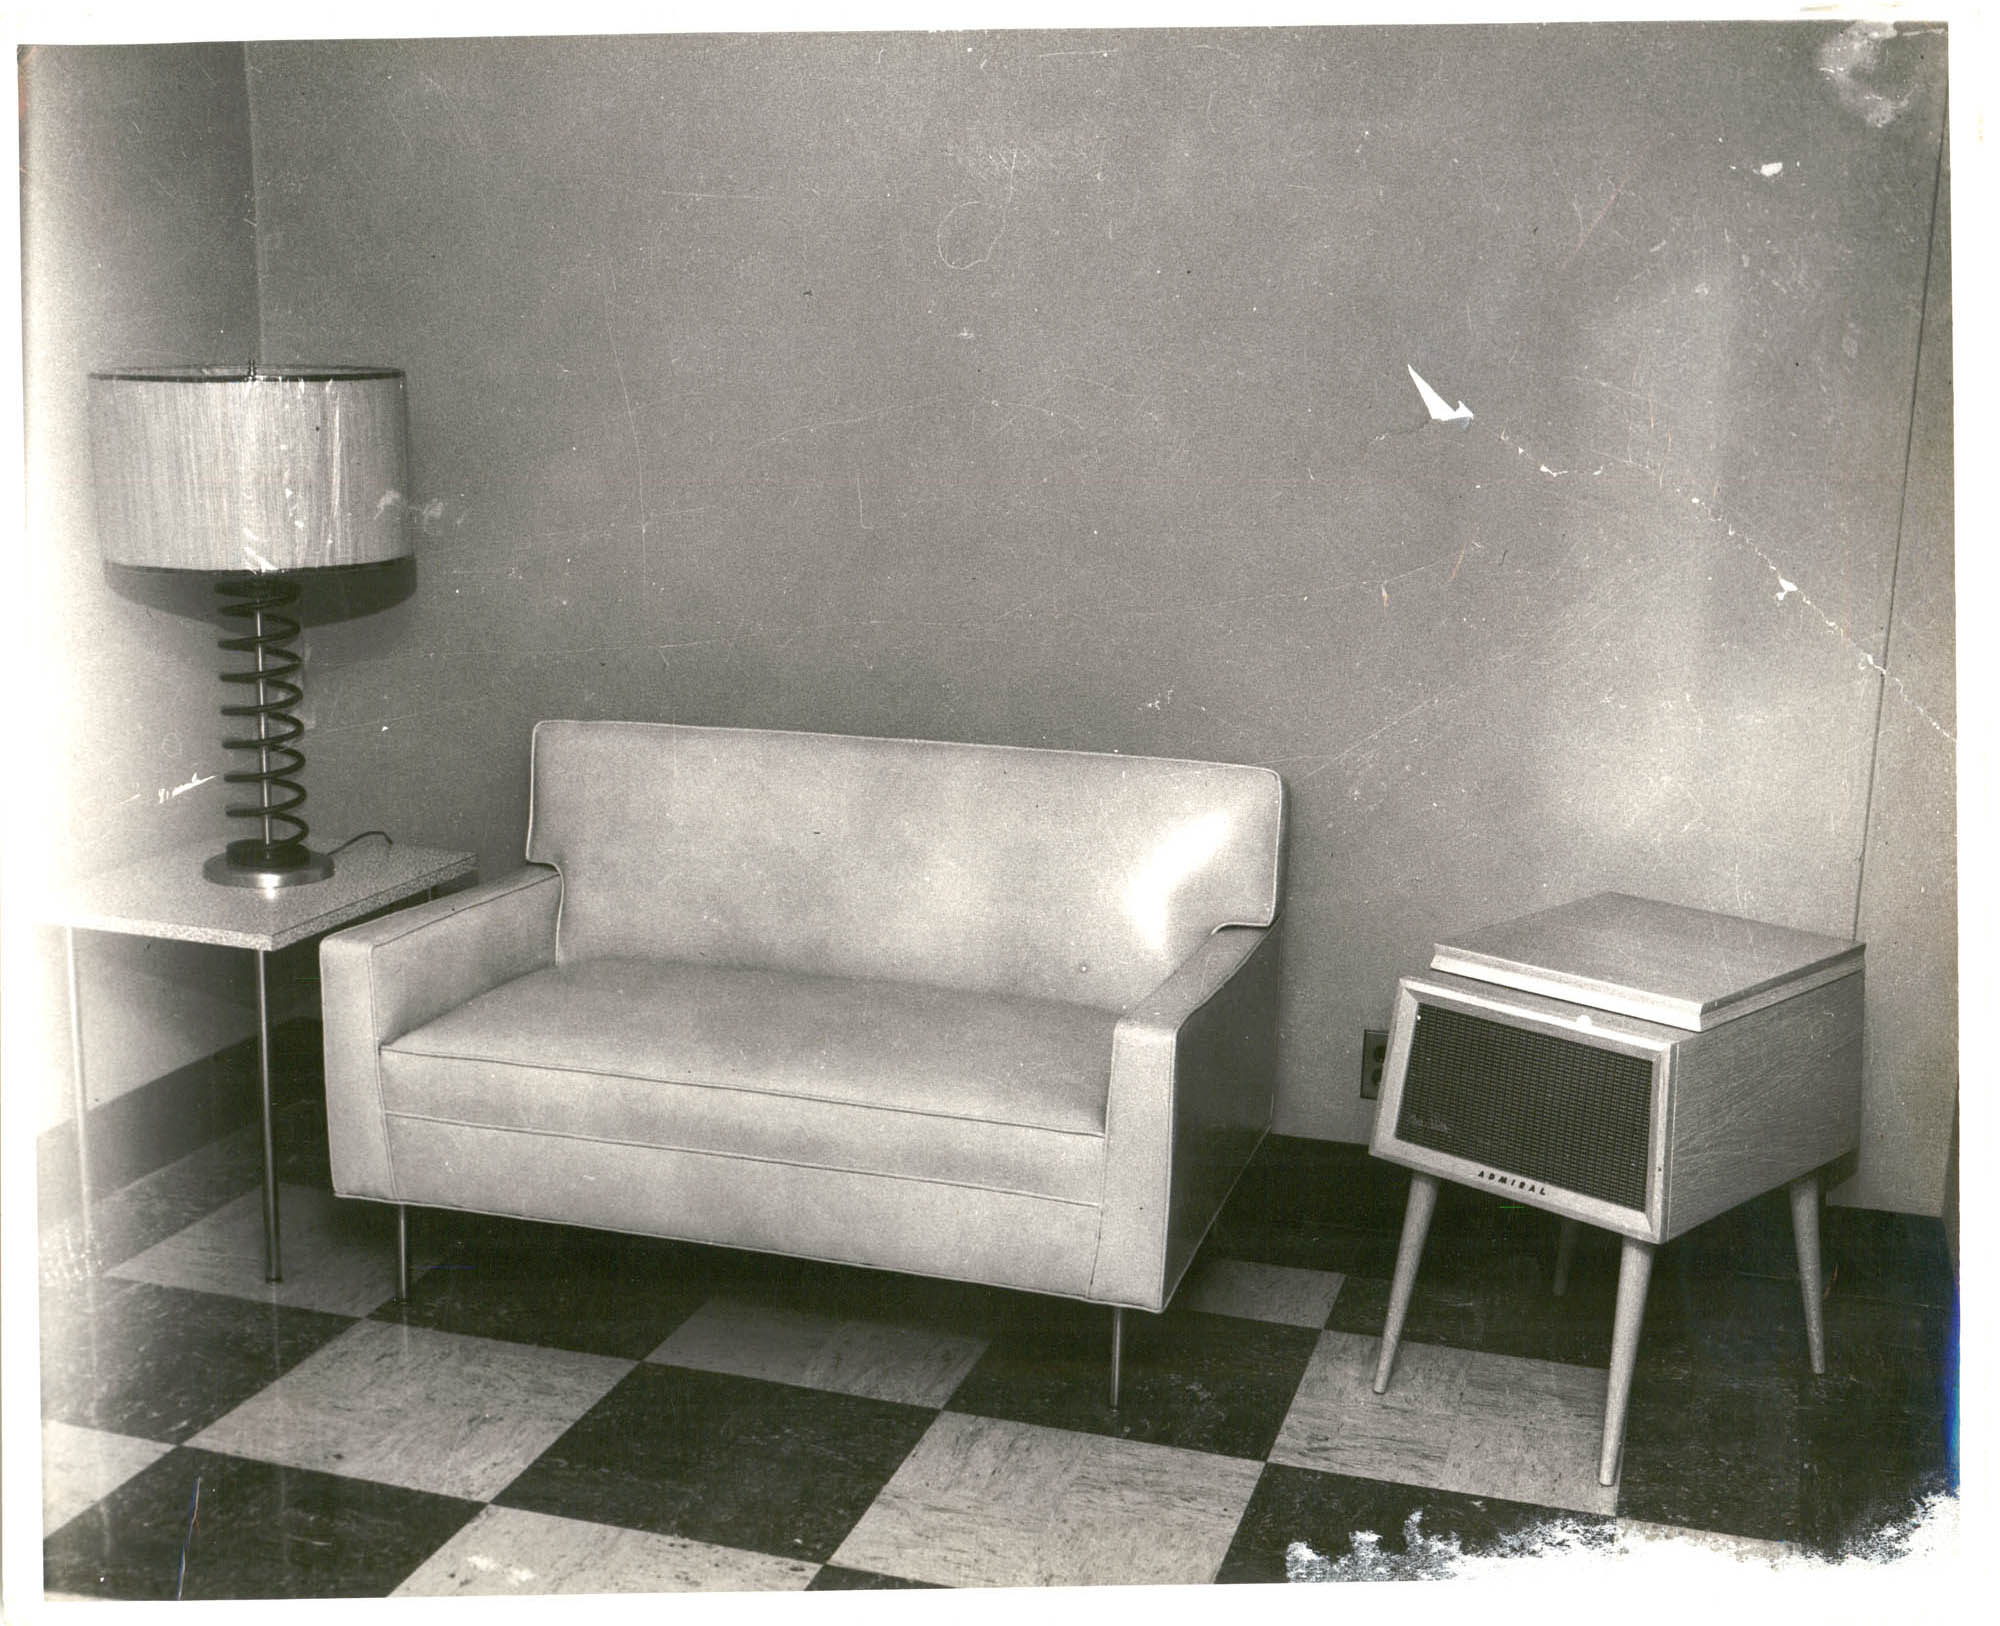 Photograph of Interior of a Room at Talladega College